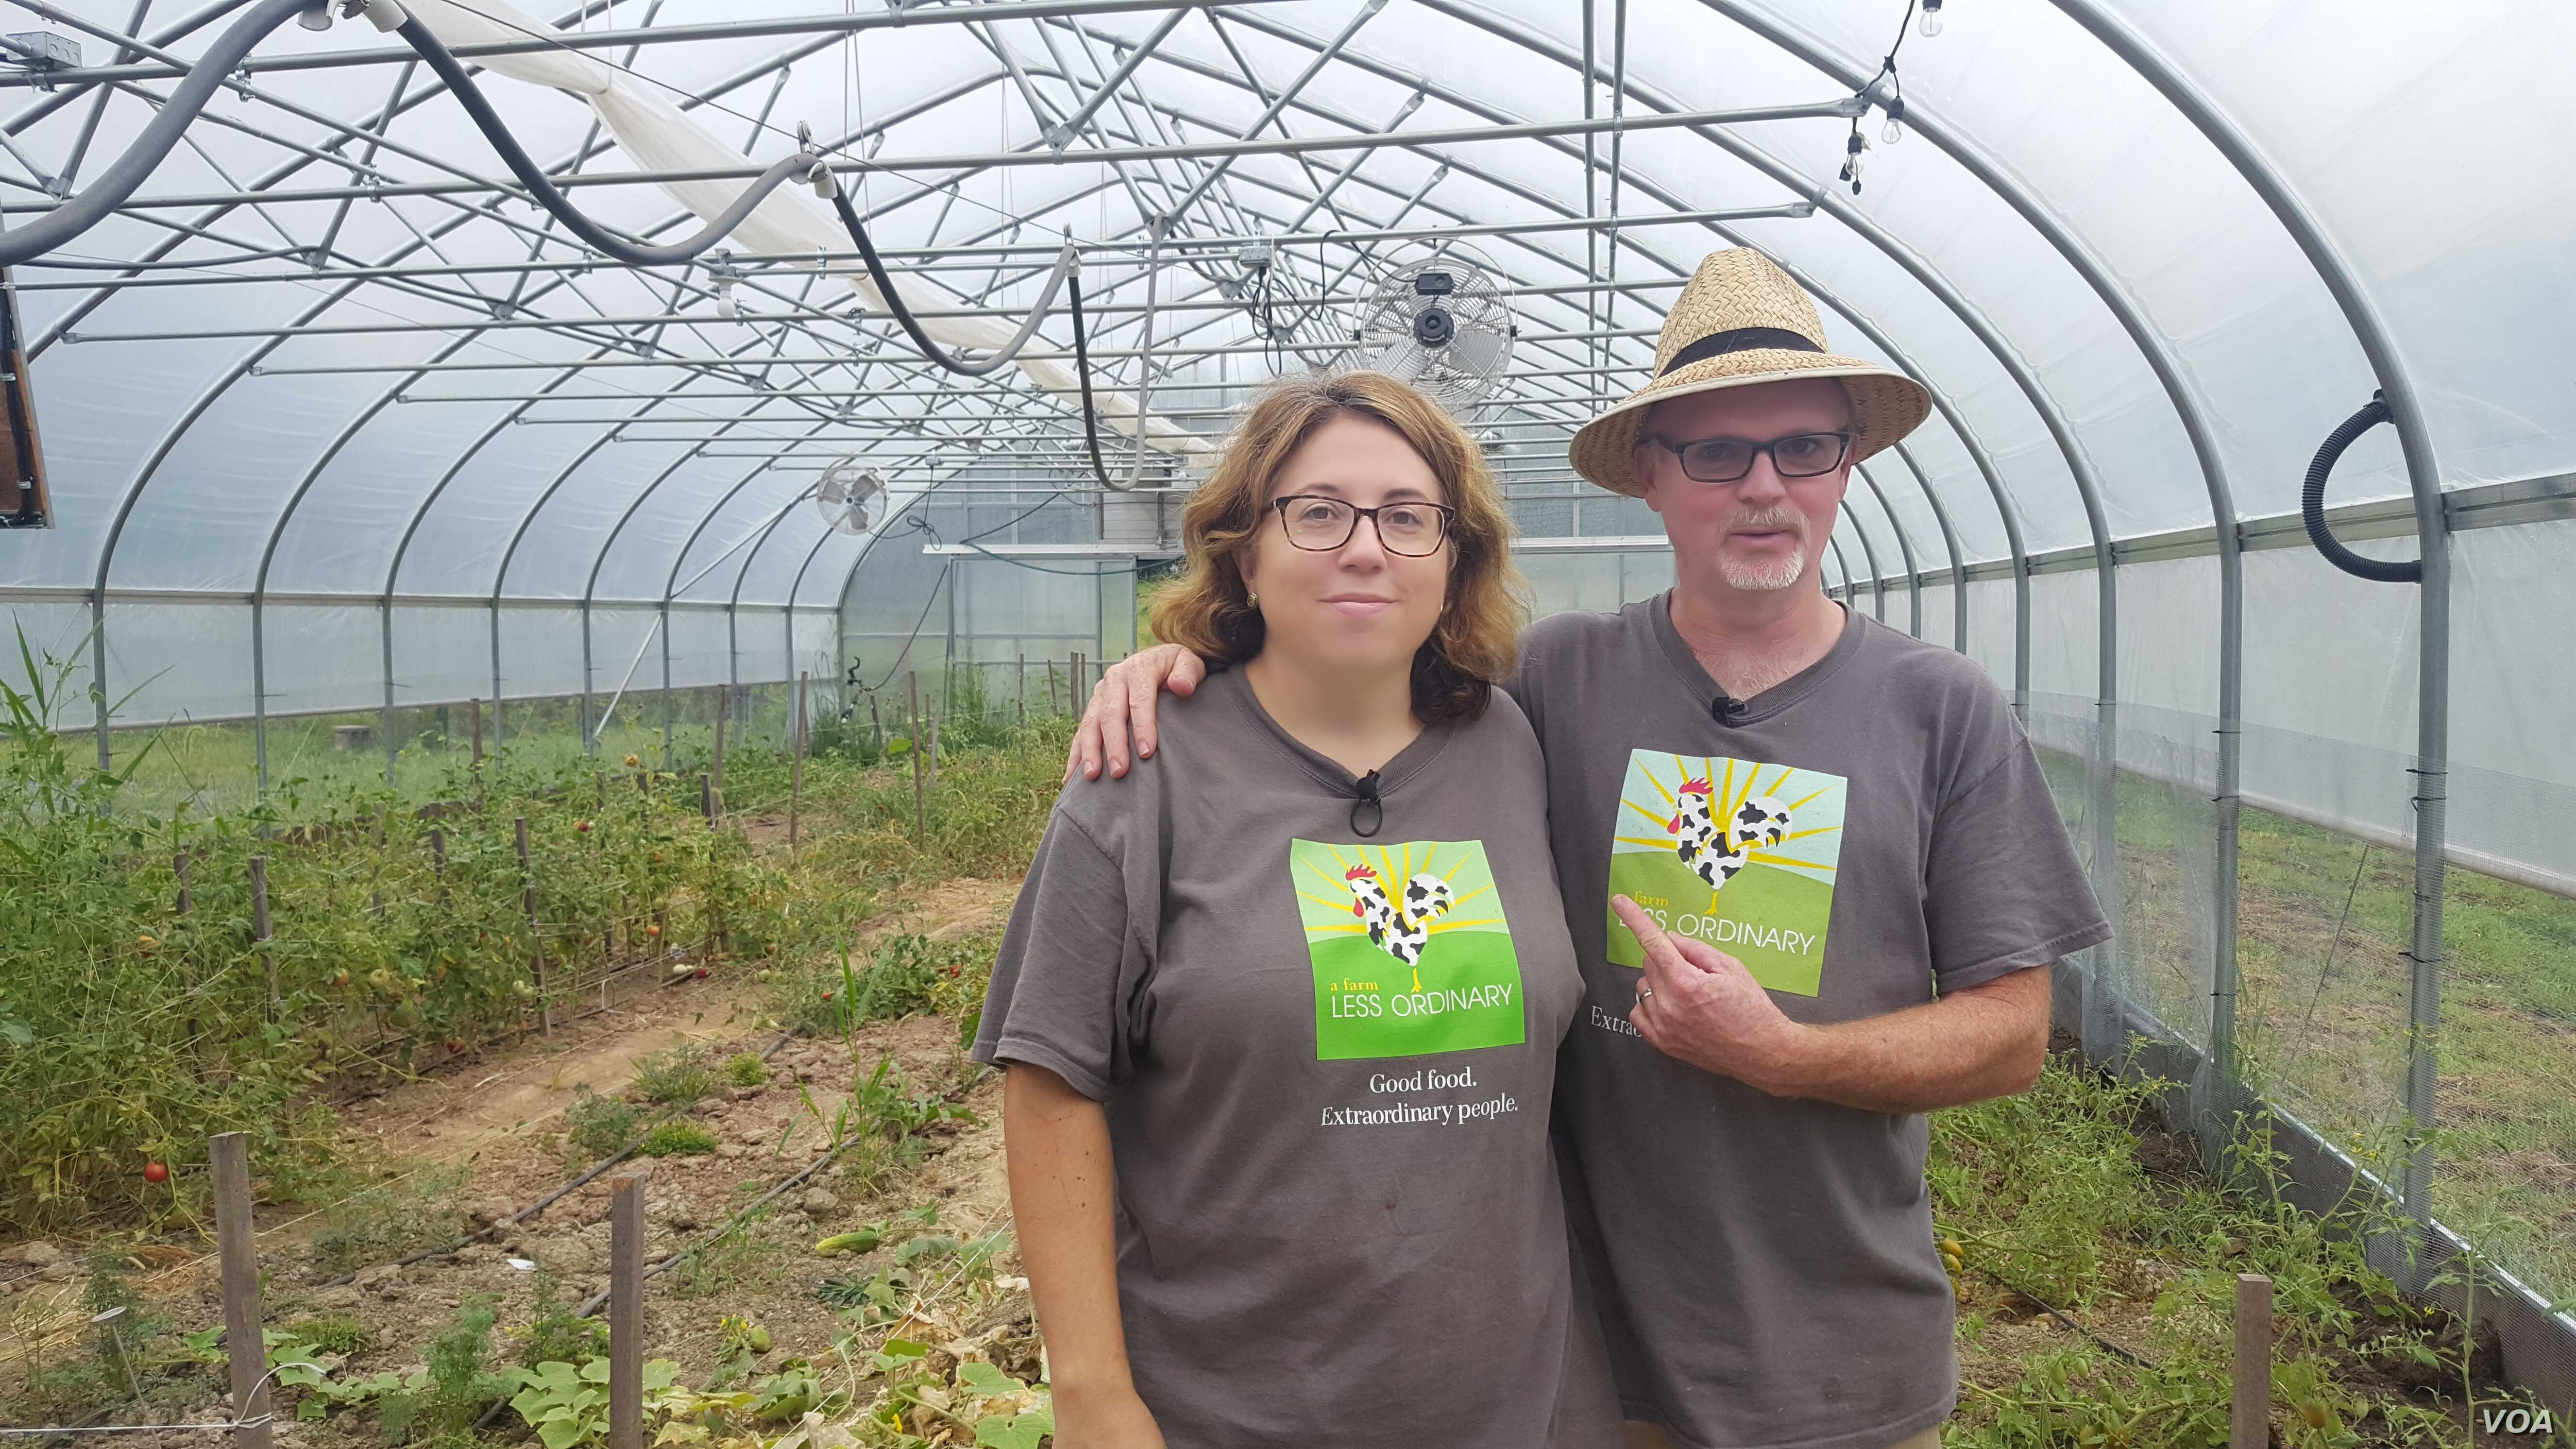 Greg Masucci and his wife, Maya Wechsler, founded A Farm Less Ordinary in Bluemont, Virginia, to teach farming skills to people with intellectual and developmental disabilities and help them earn money. (Faiza Elmasry/VOA)